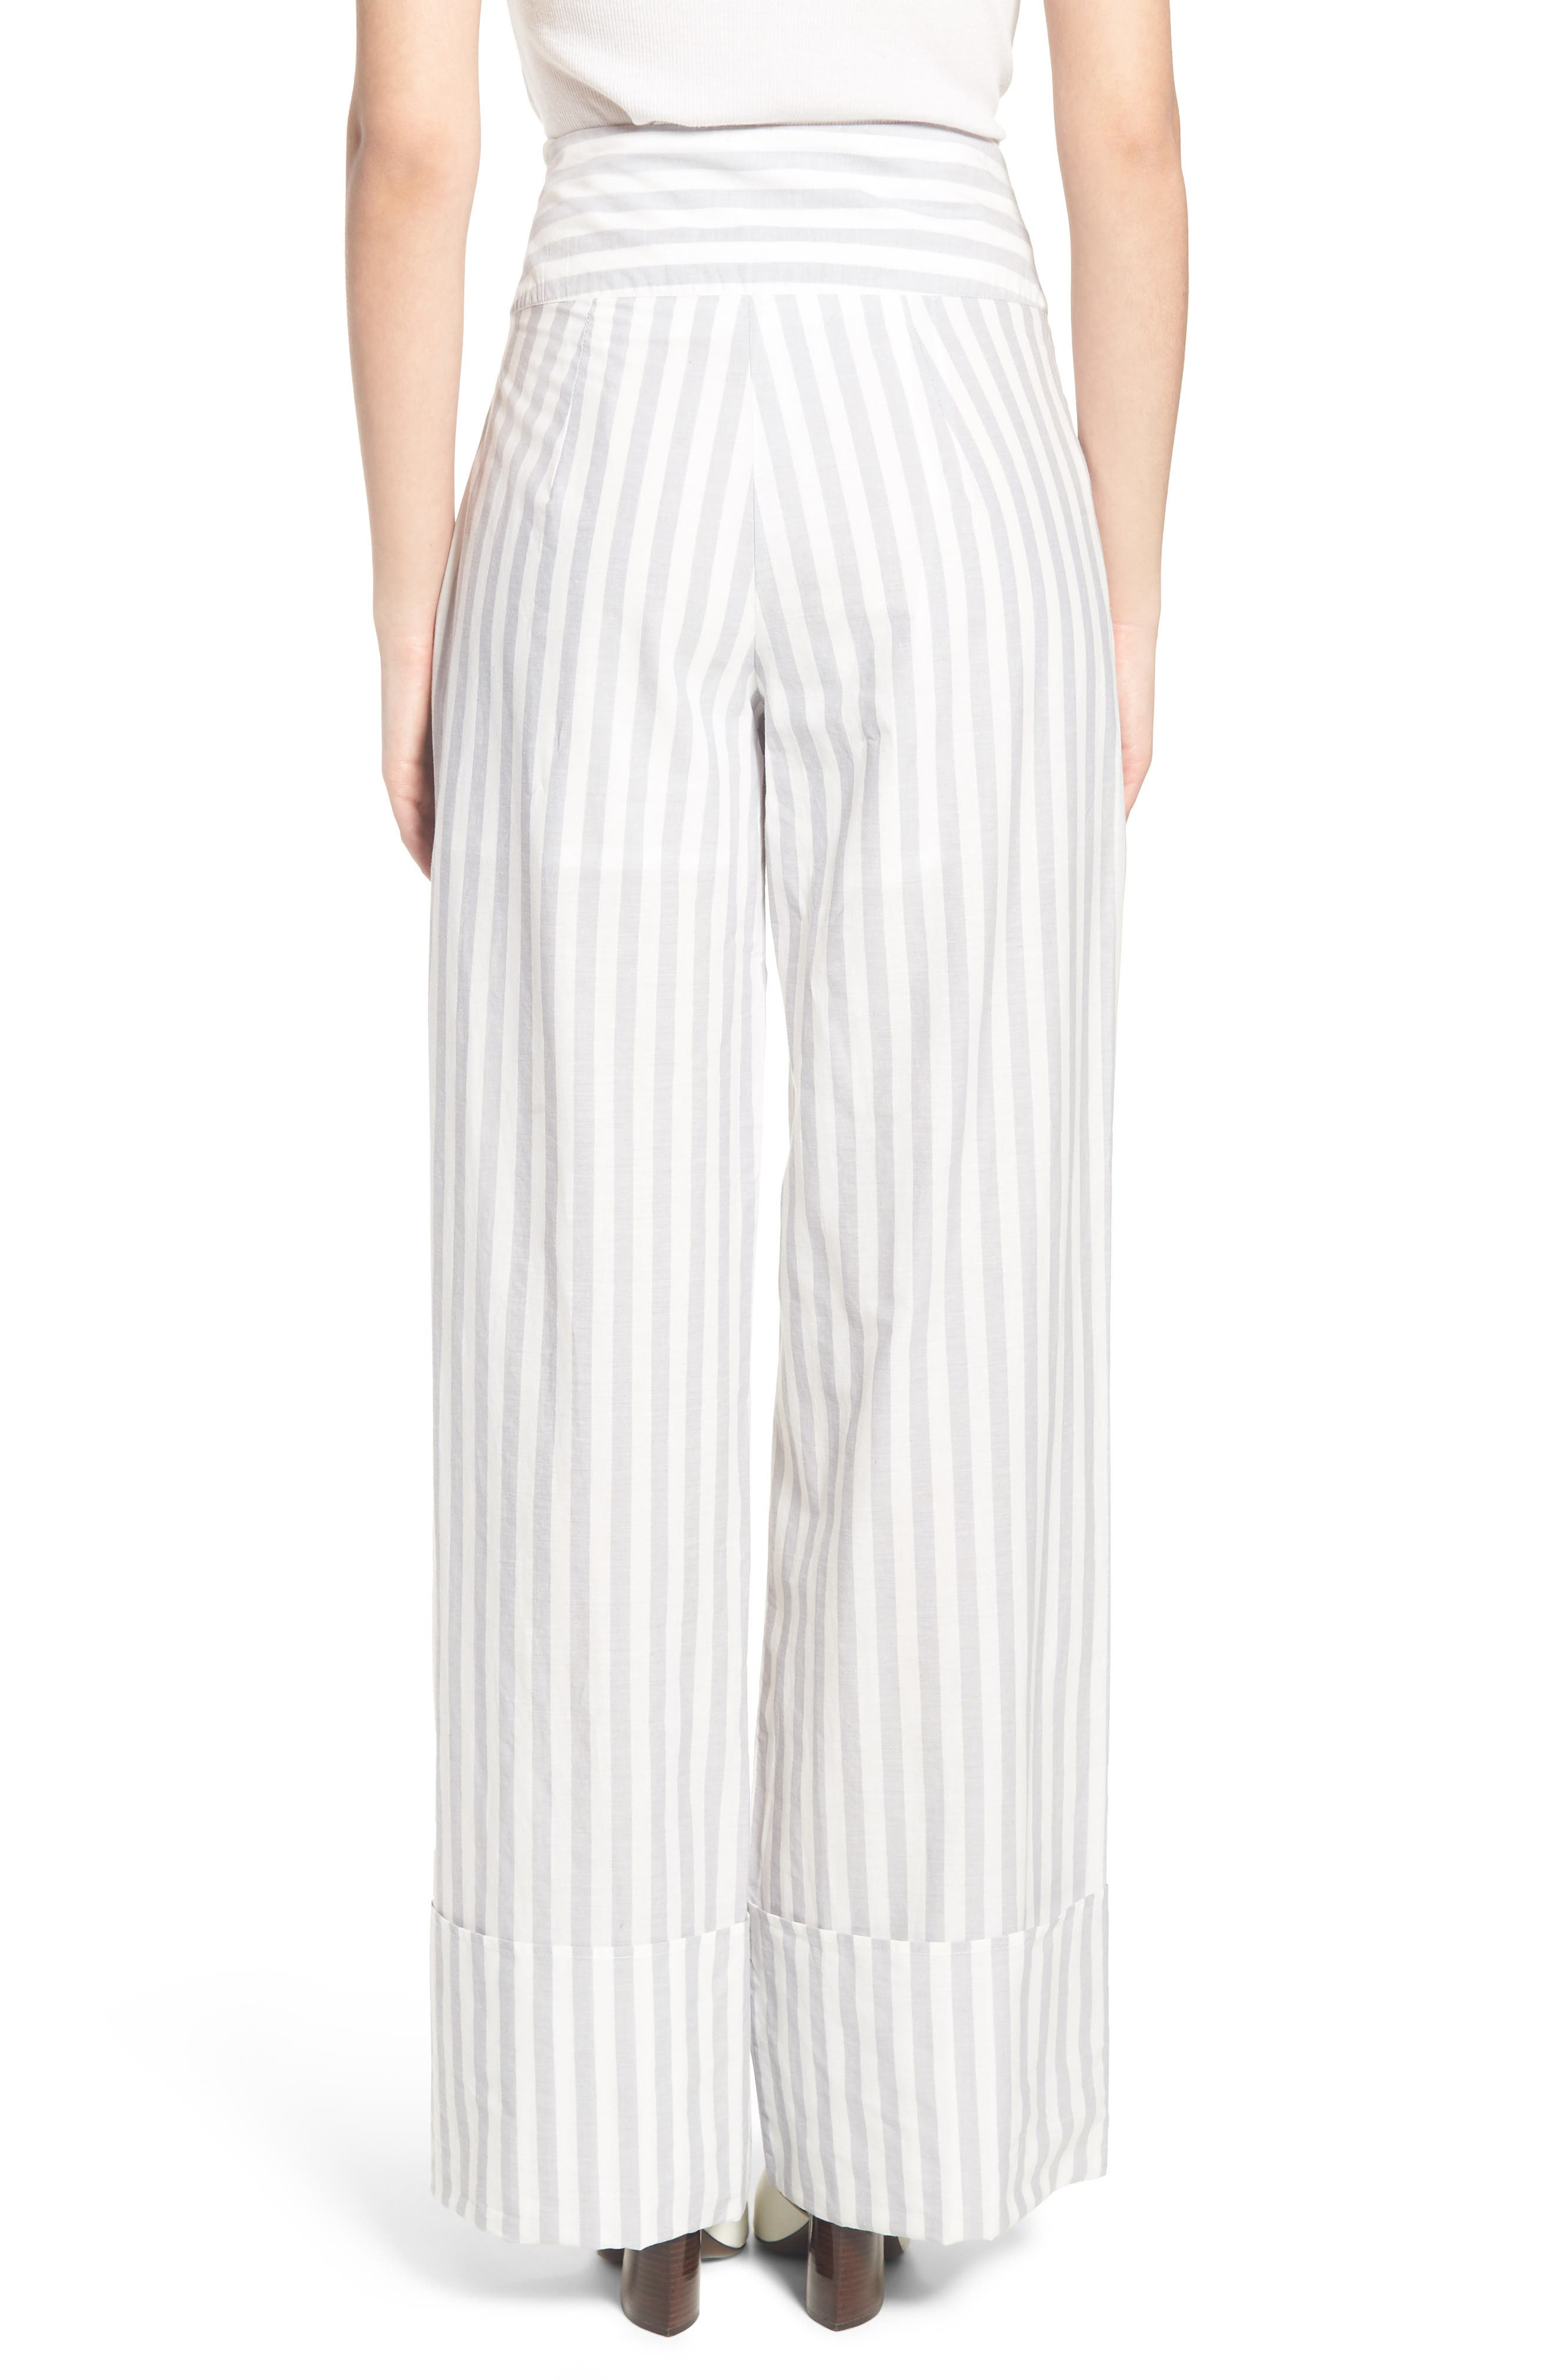 LOST INK,                             Wide Turn Up Stripe Trouser,                             Alternate thumbnail 2, color,                             020